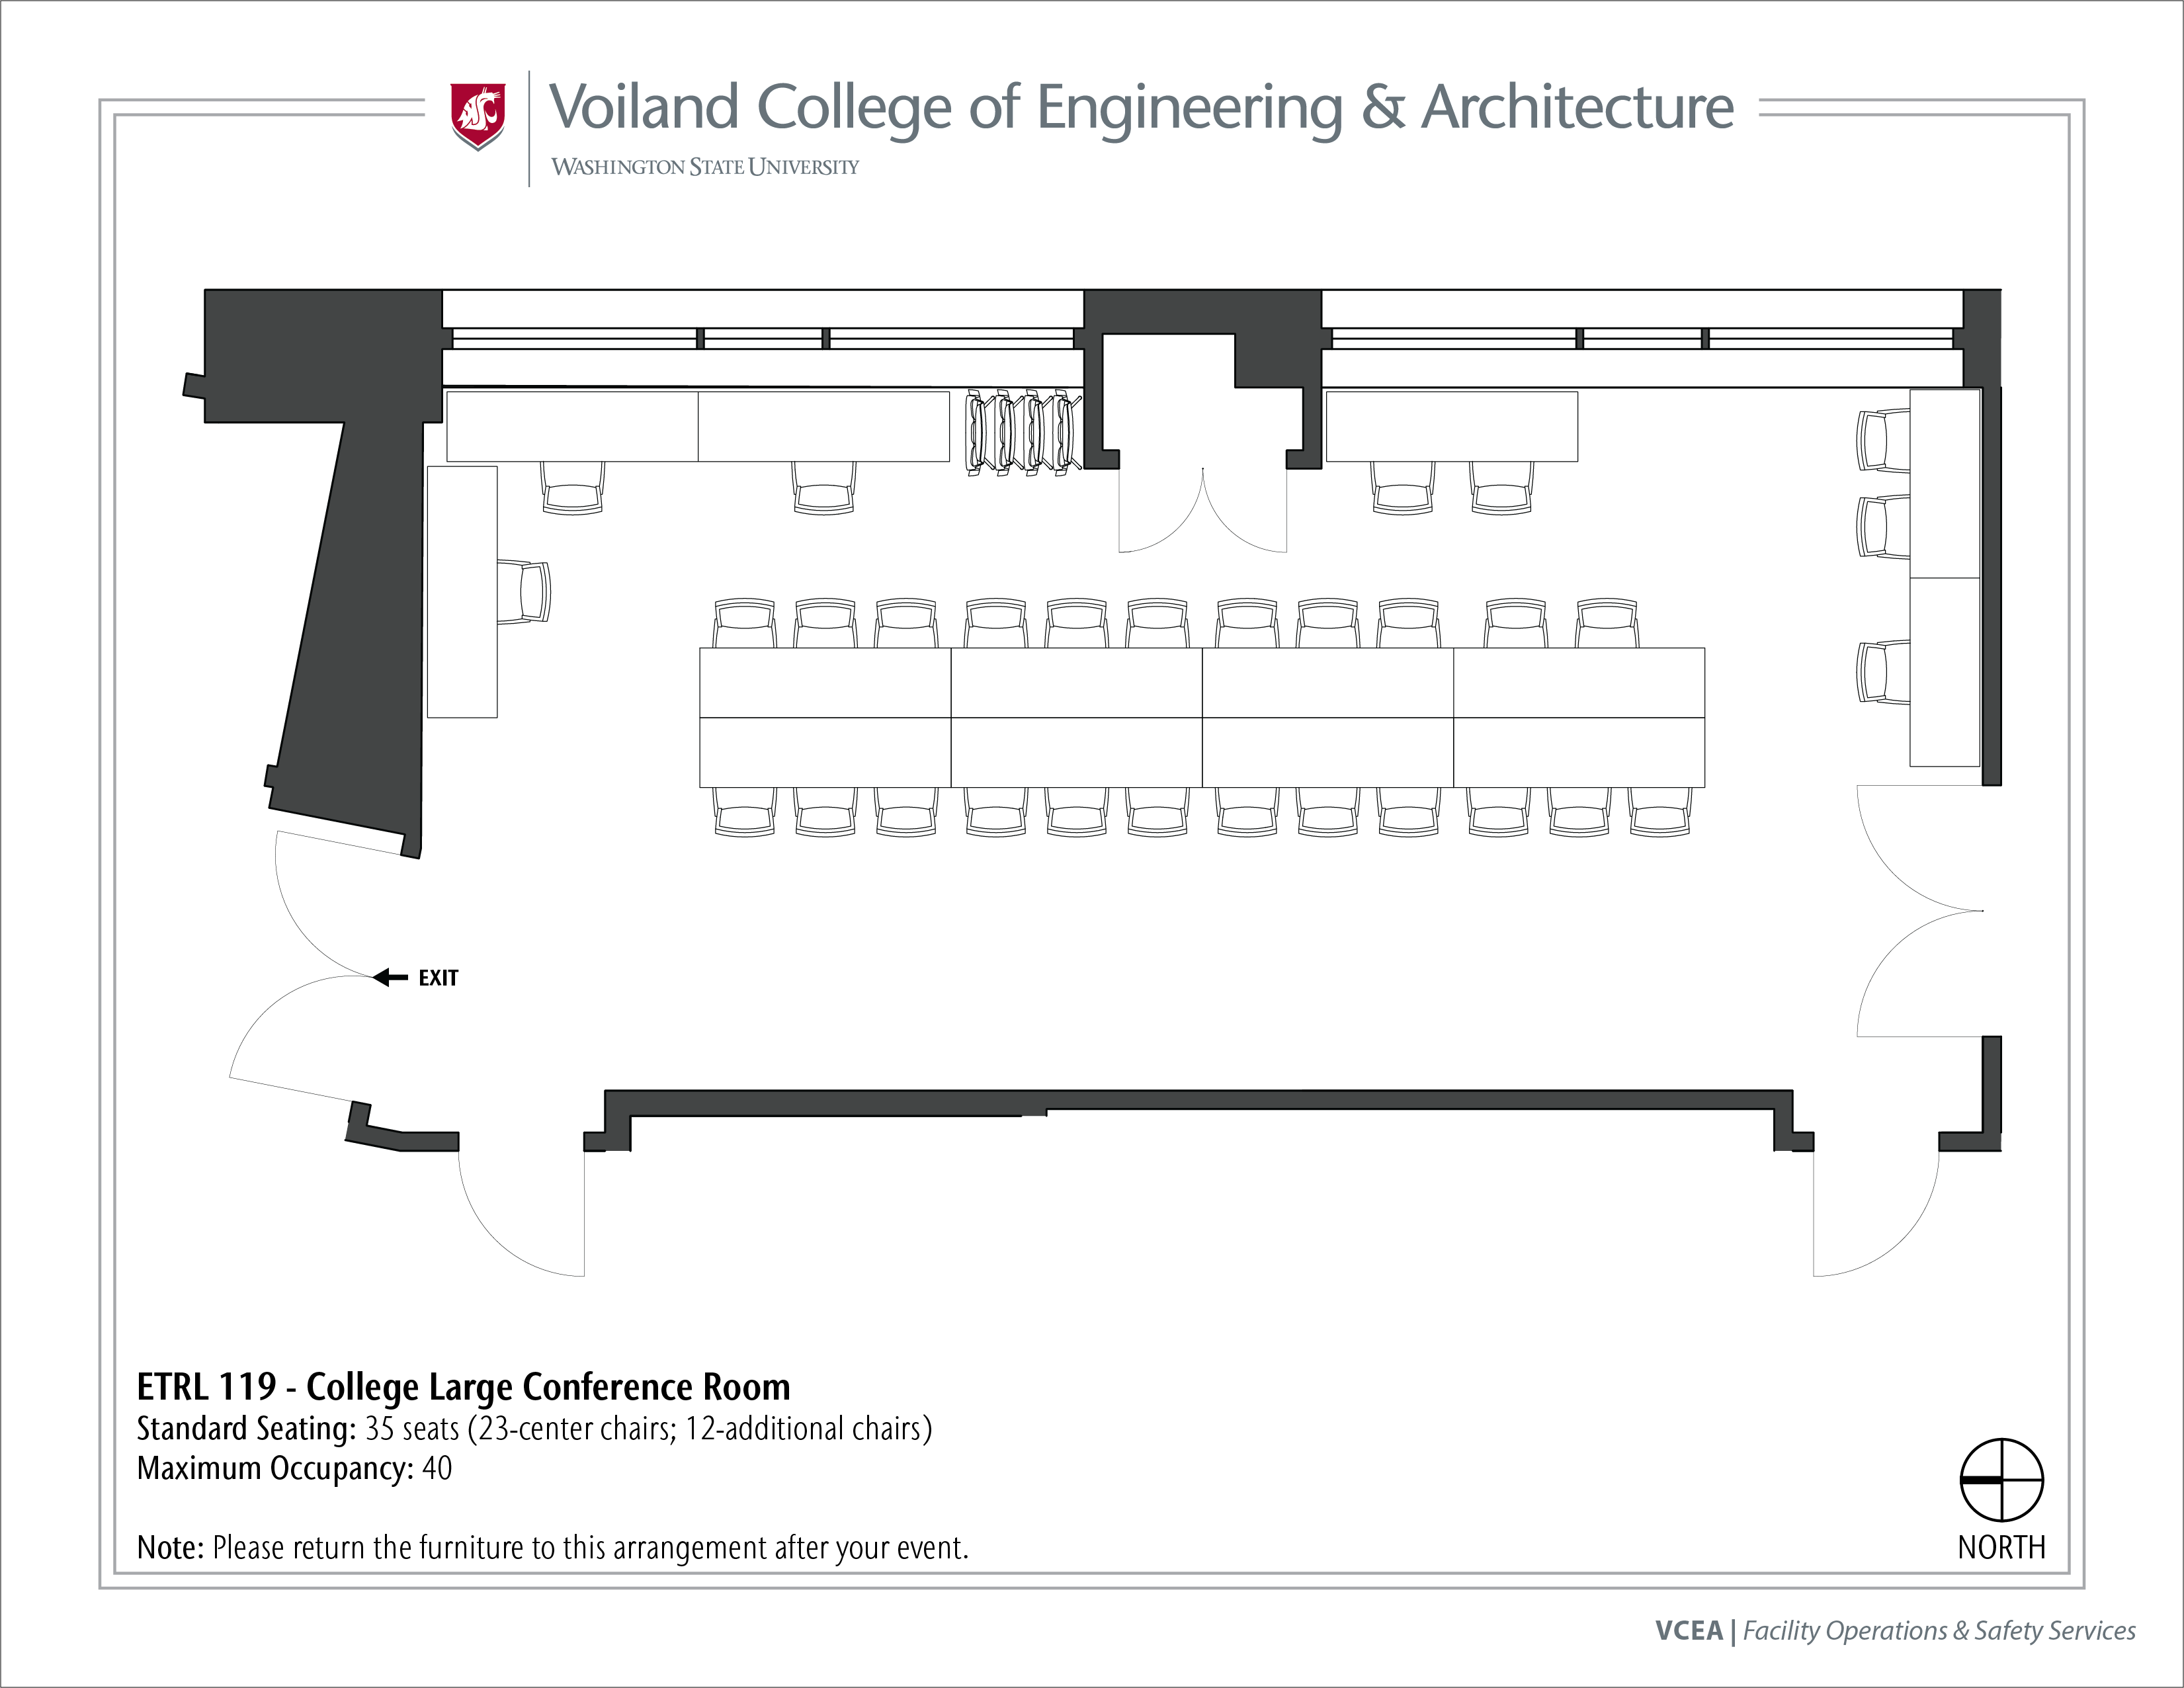 Layout of ETRL 119, College Large Conference Room, at WSU Pullman